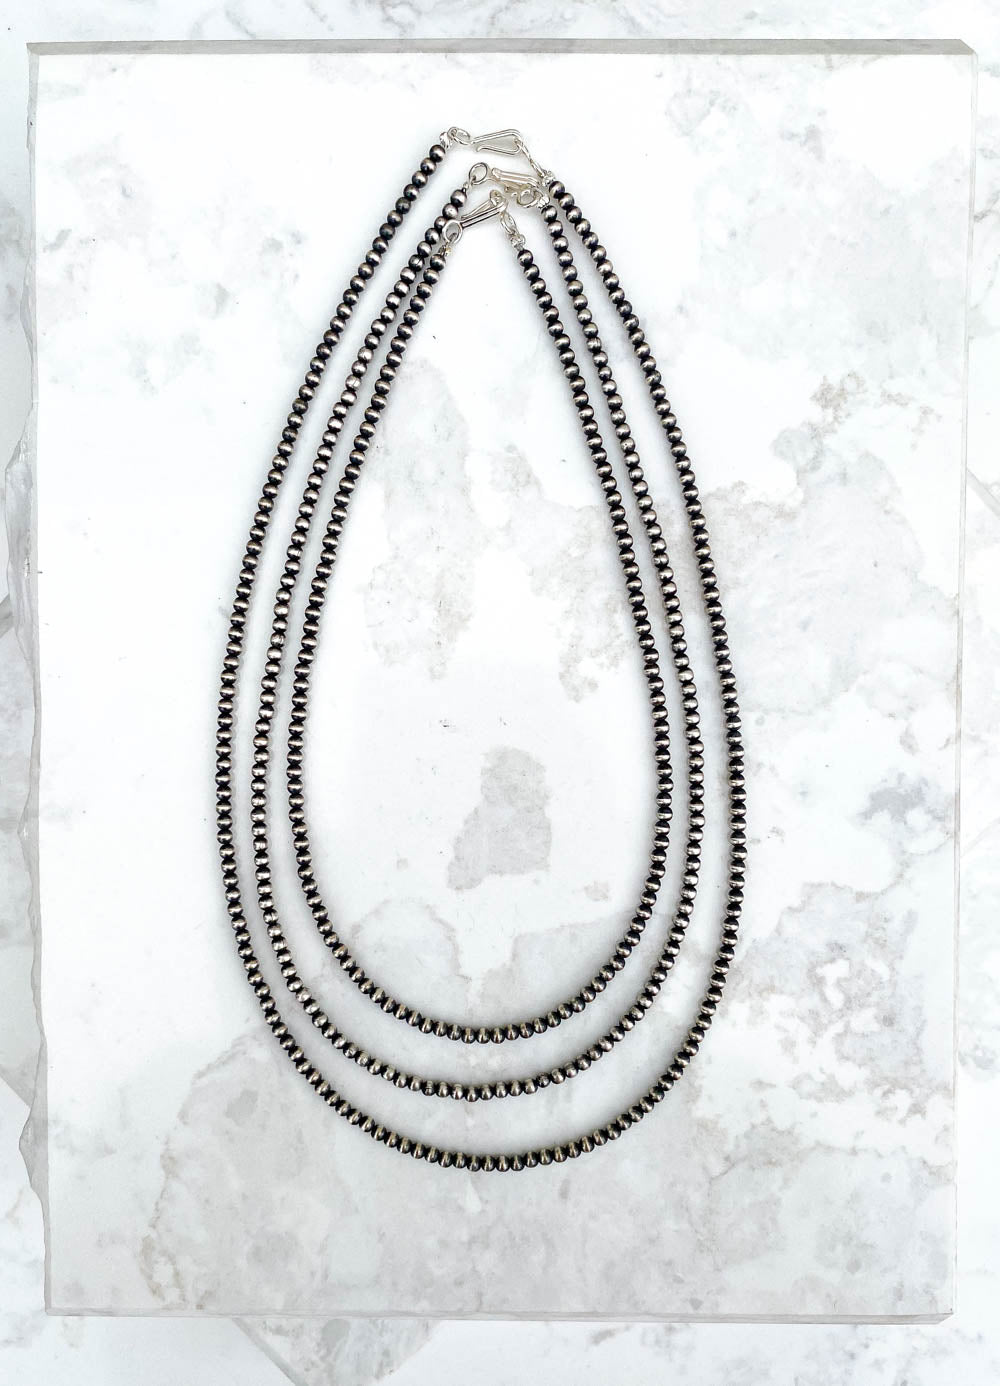 3mm Navajo Pearl Necklace